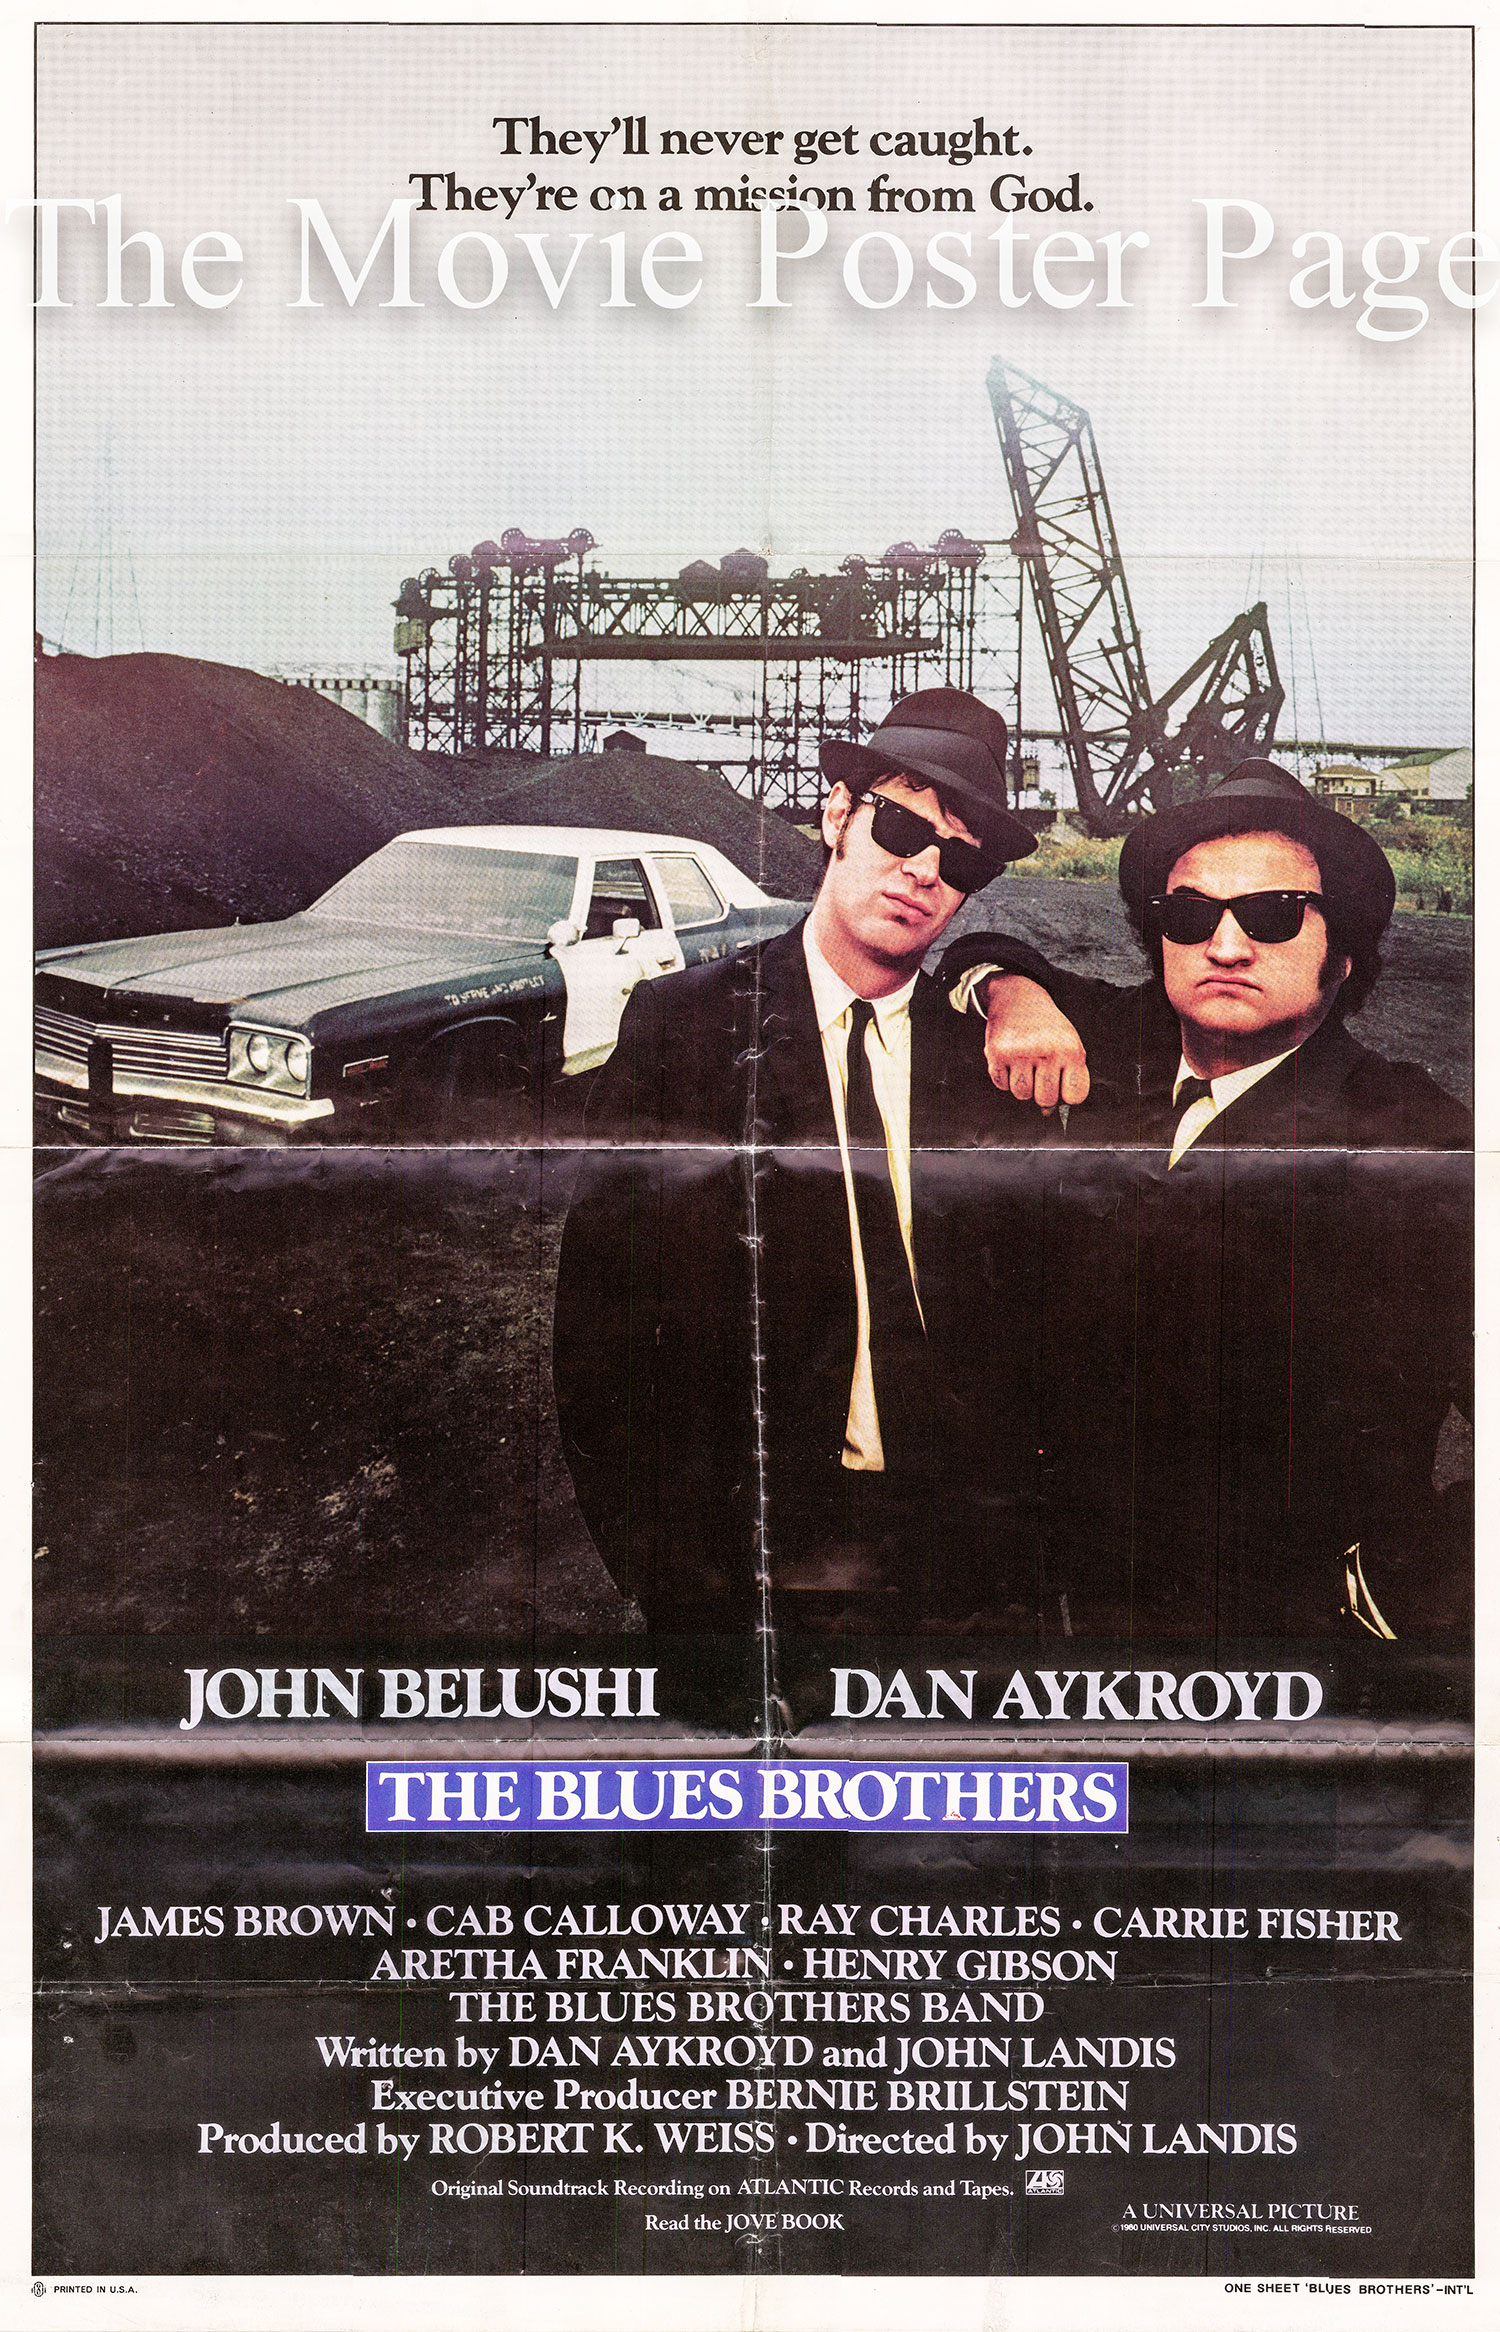 Pictured is a US one-sheet promotional poster for the 1980 John Landis film The Blues Brothers starring John Belushi and Dan Aykroyd.